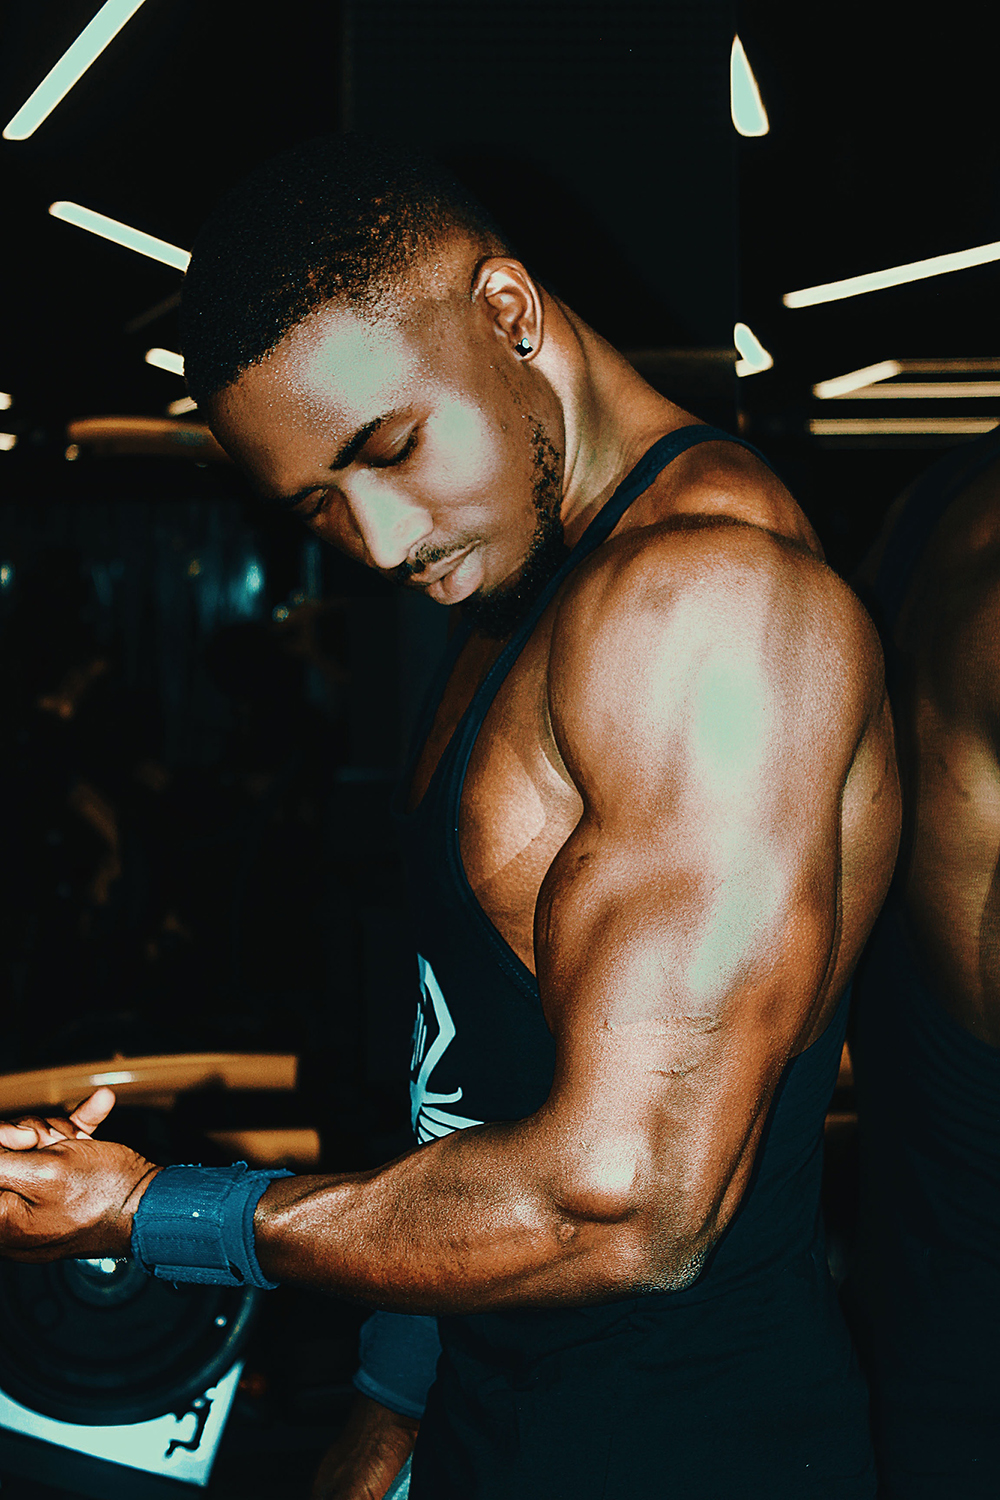 How To Inject Testosterone: What are the steps?